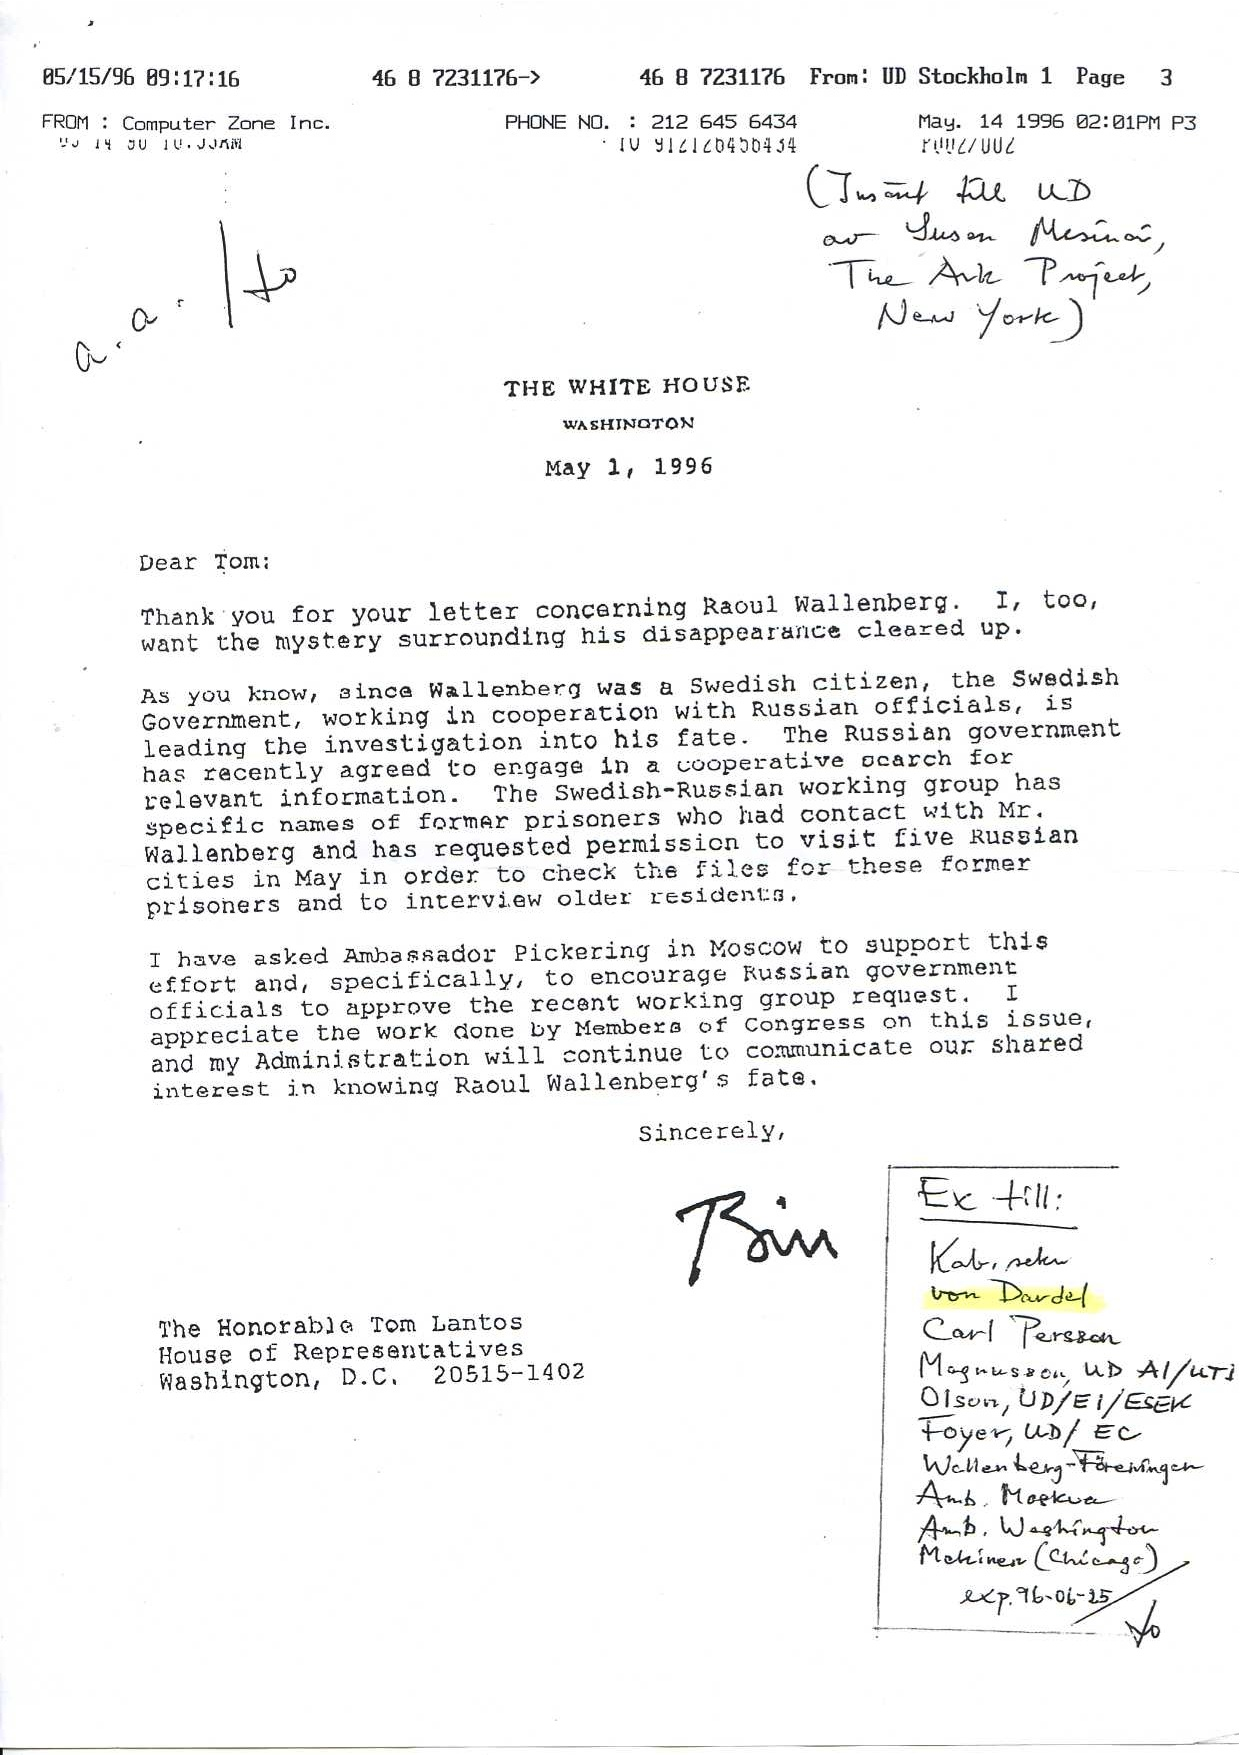 Letter To Tom Lantos From Bill Clinton Searching For